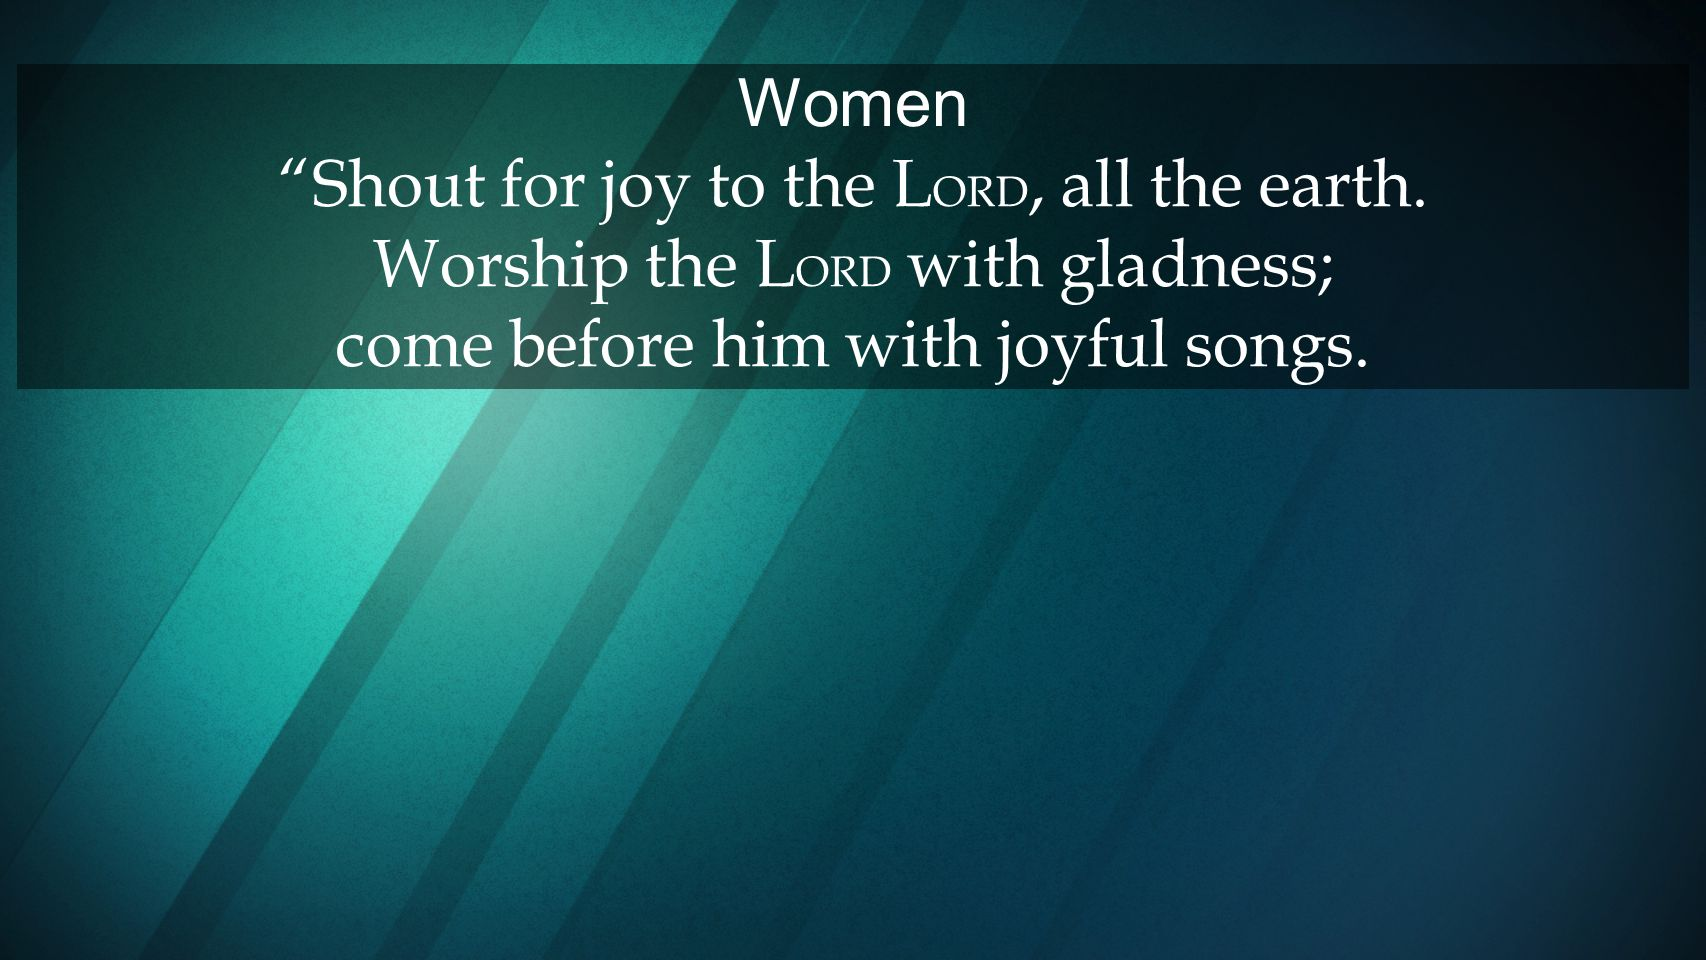 Women Shout for joy to the LORD, all the earth